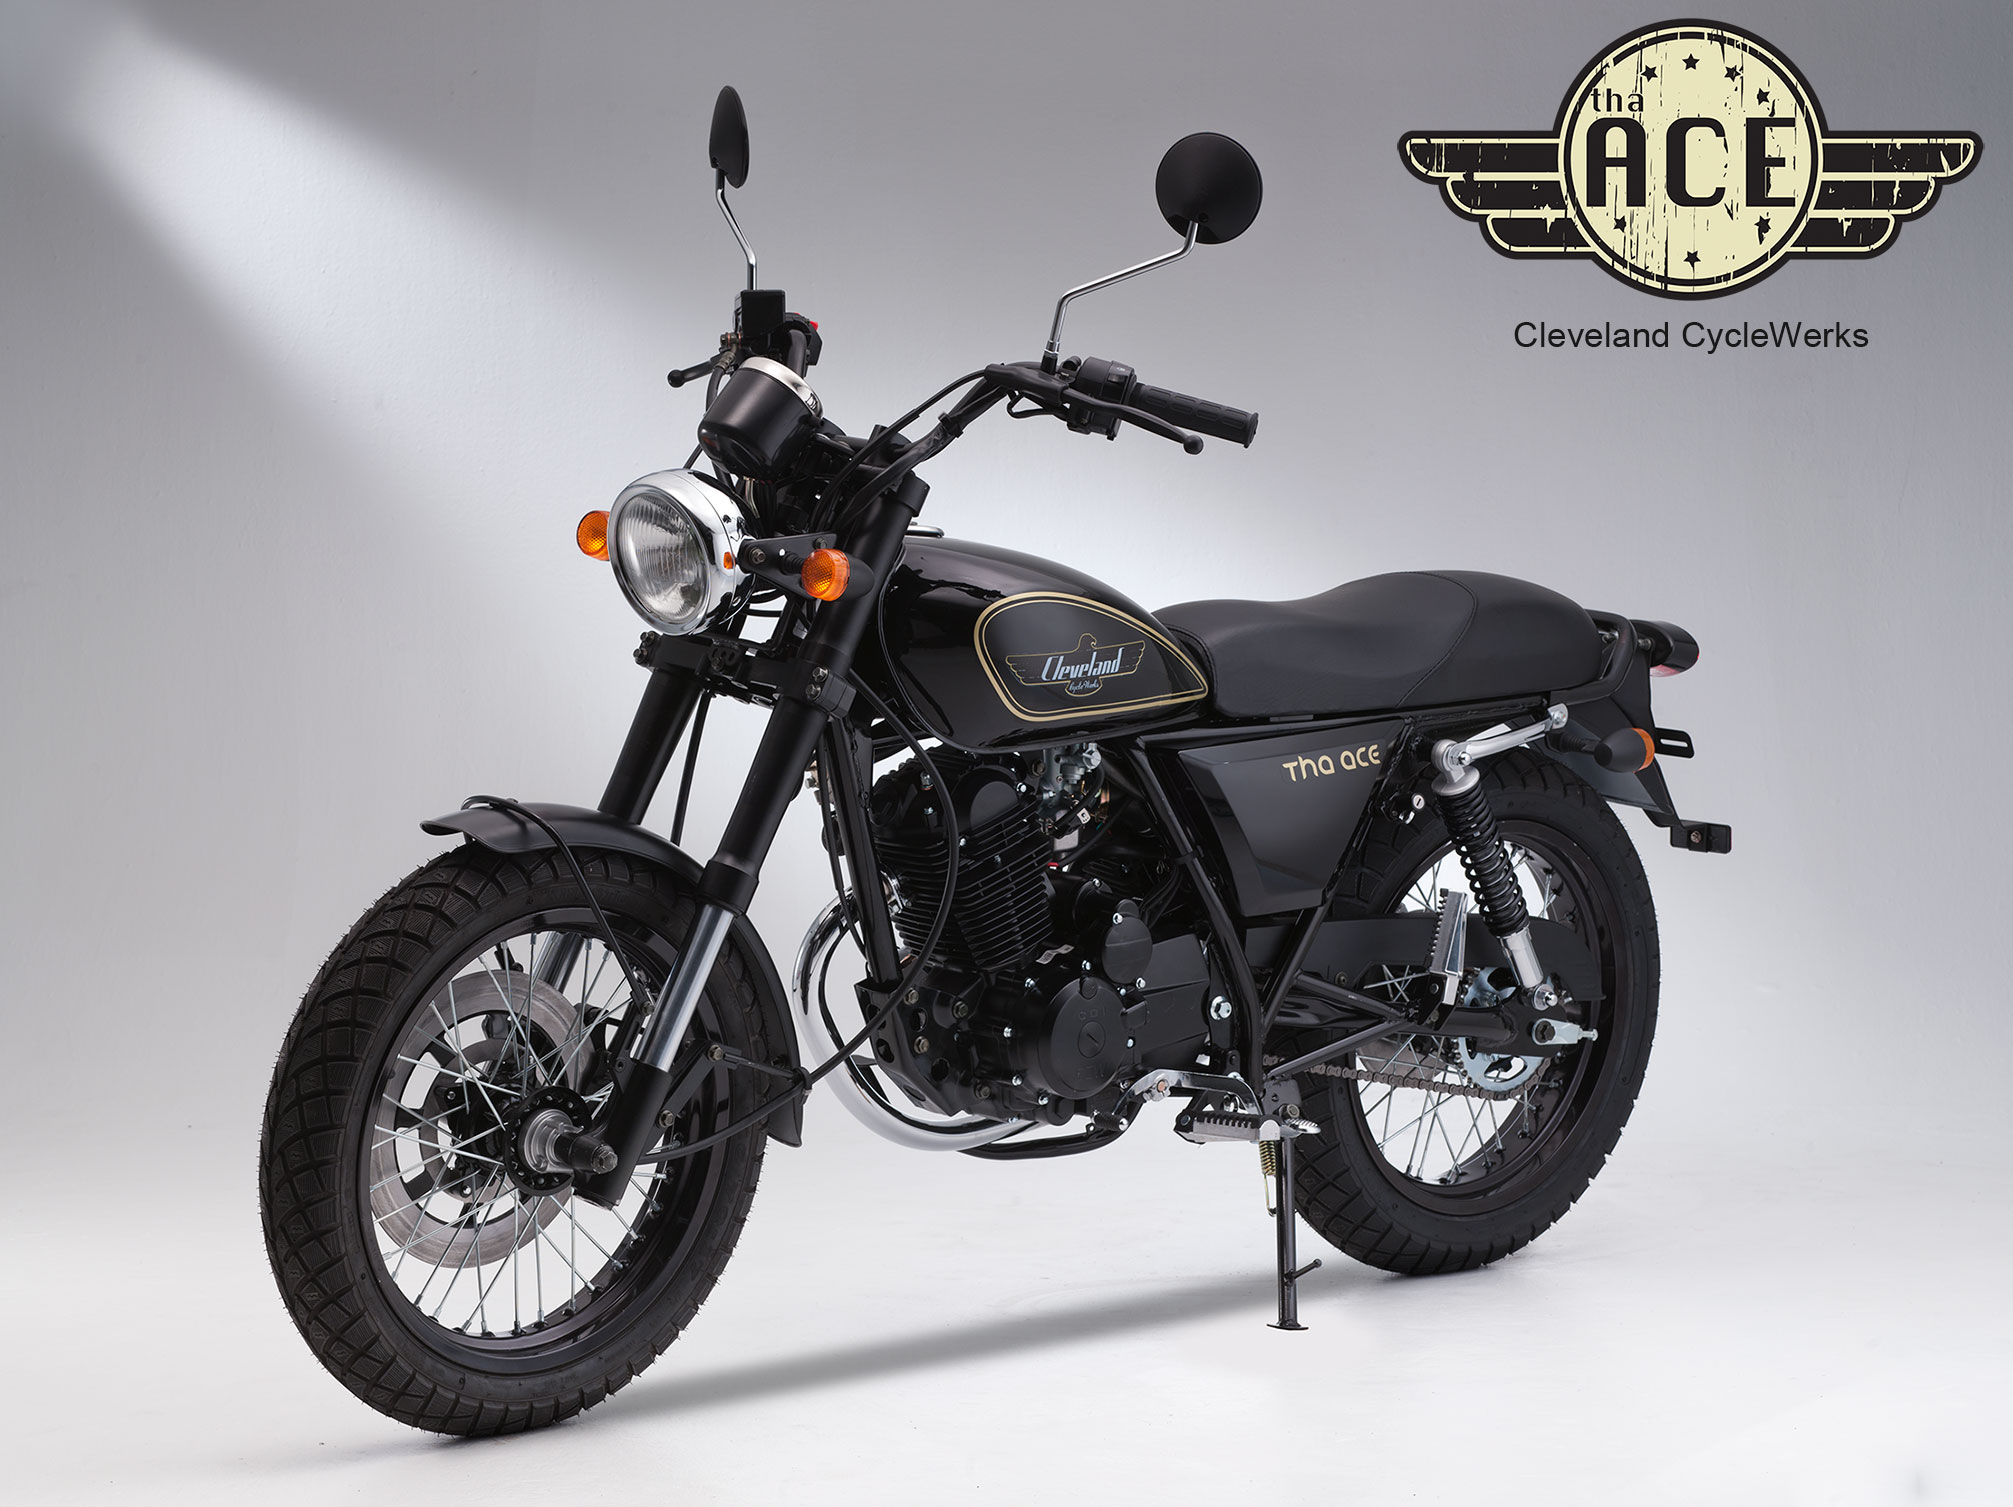 2013 cleveland cyclewerks ace deluxe review for Usa motors cleveland ohio